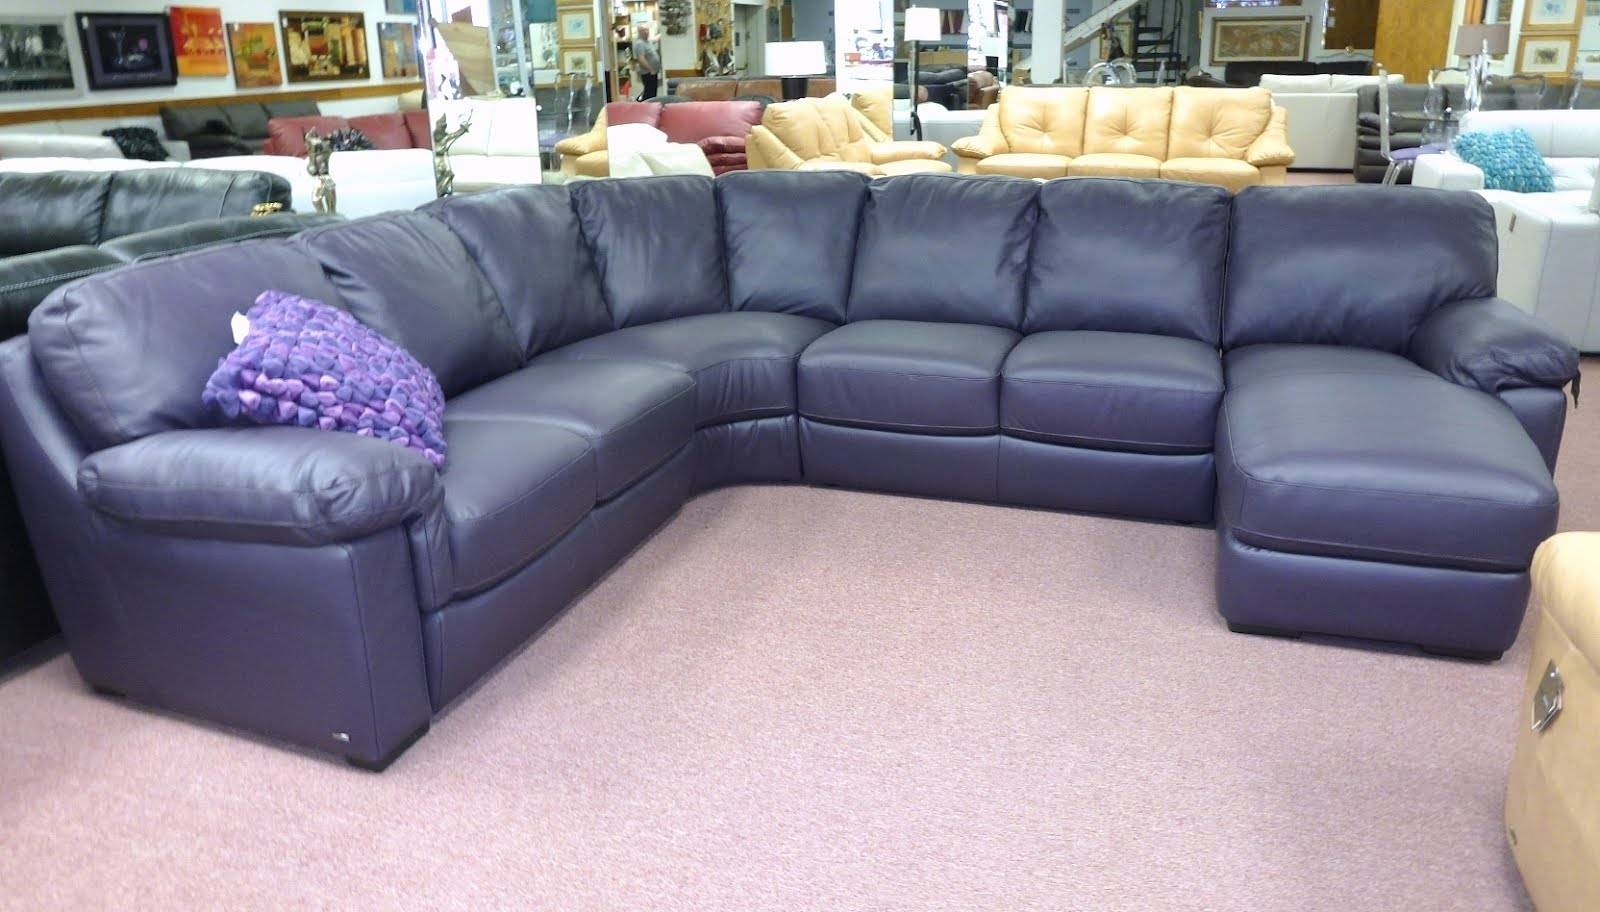 Best Navy Blue Leather Sectional Sofa 64 With Additional Jcpenney within Blue Leather Sectional Sofas (Image 4 of 15)